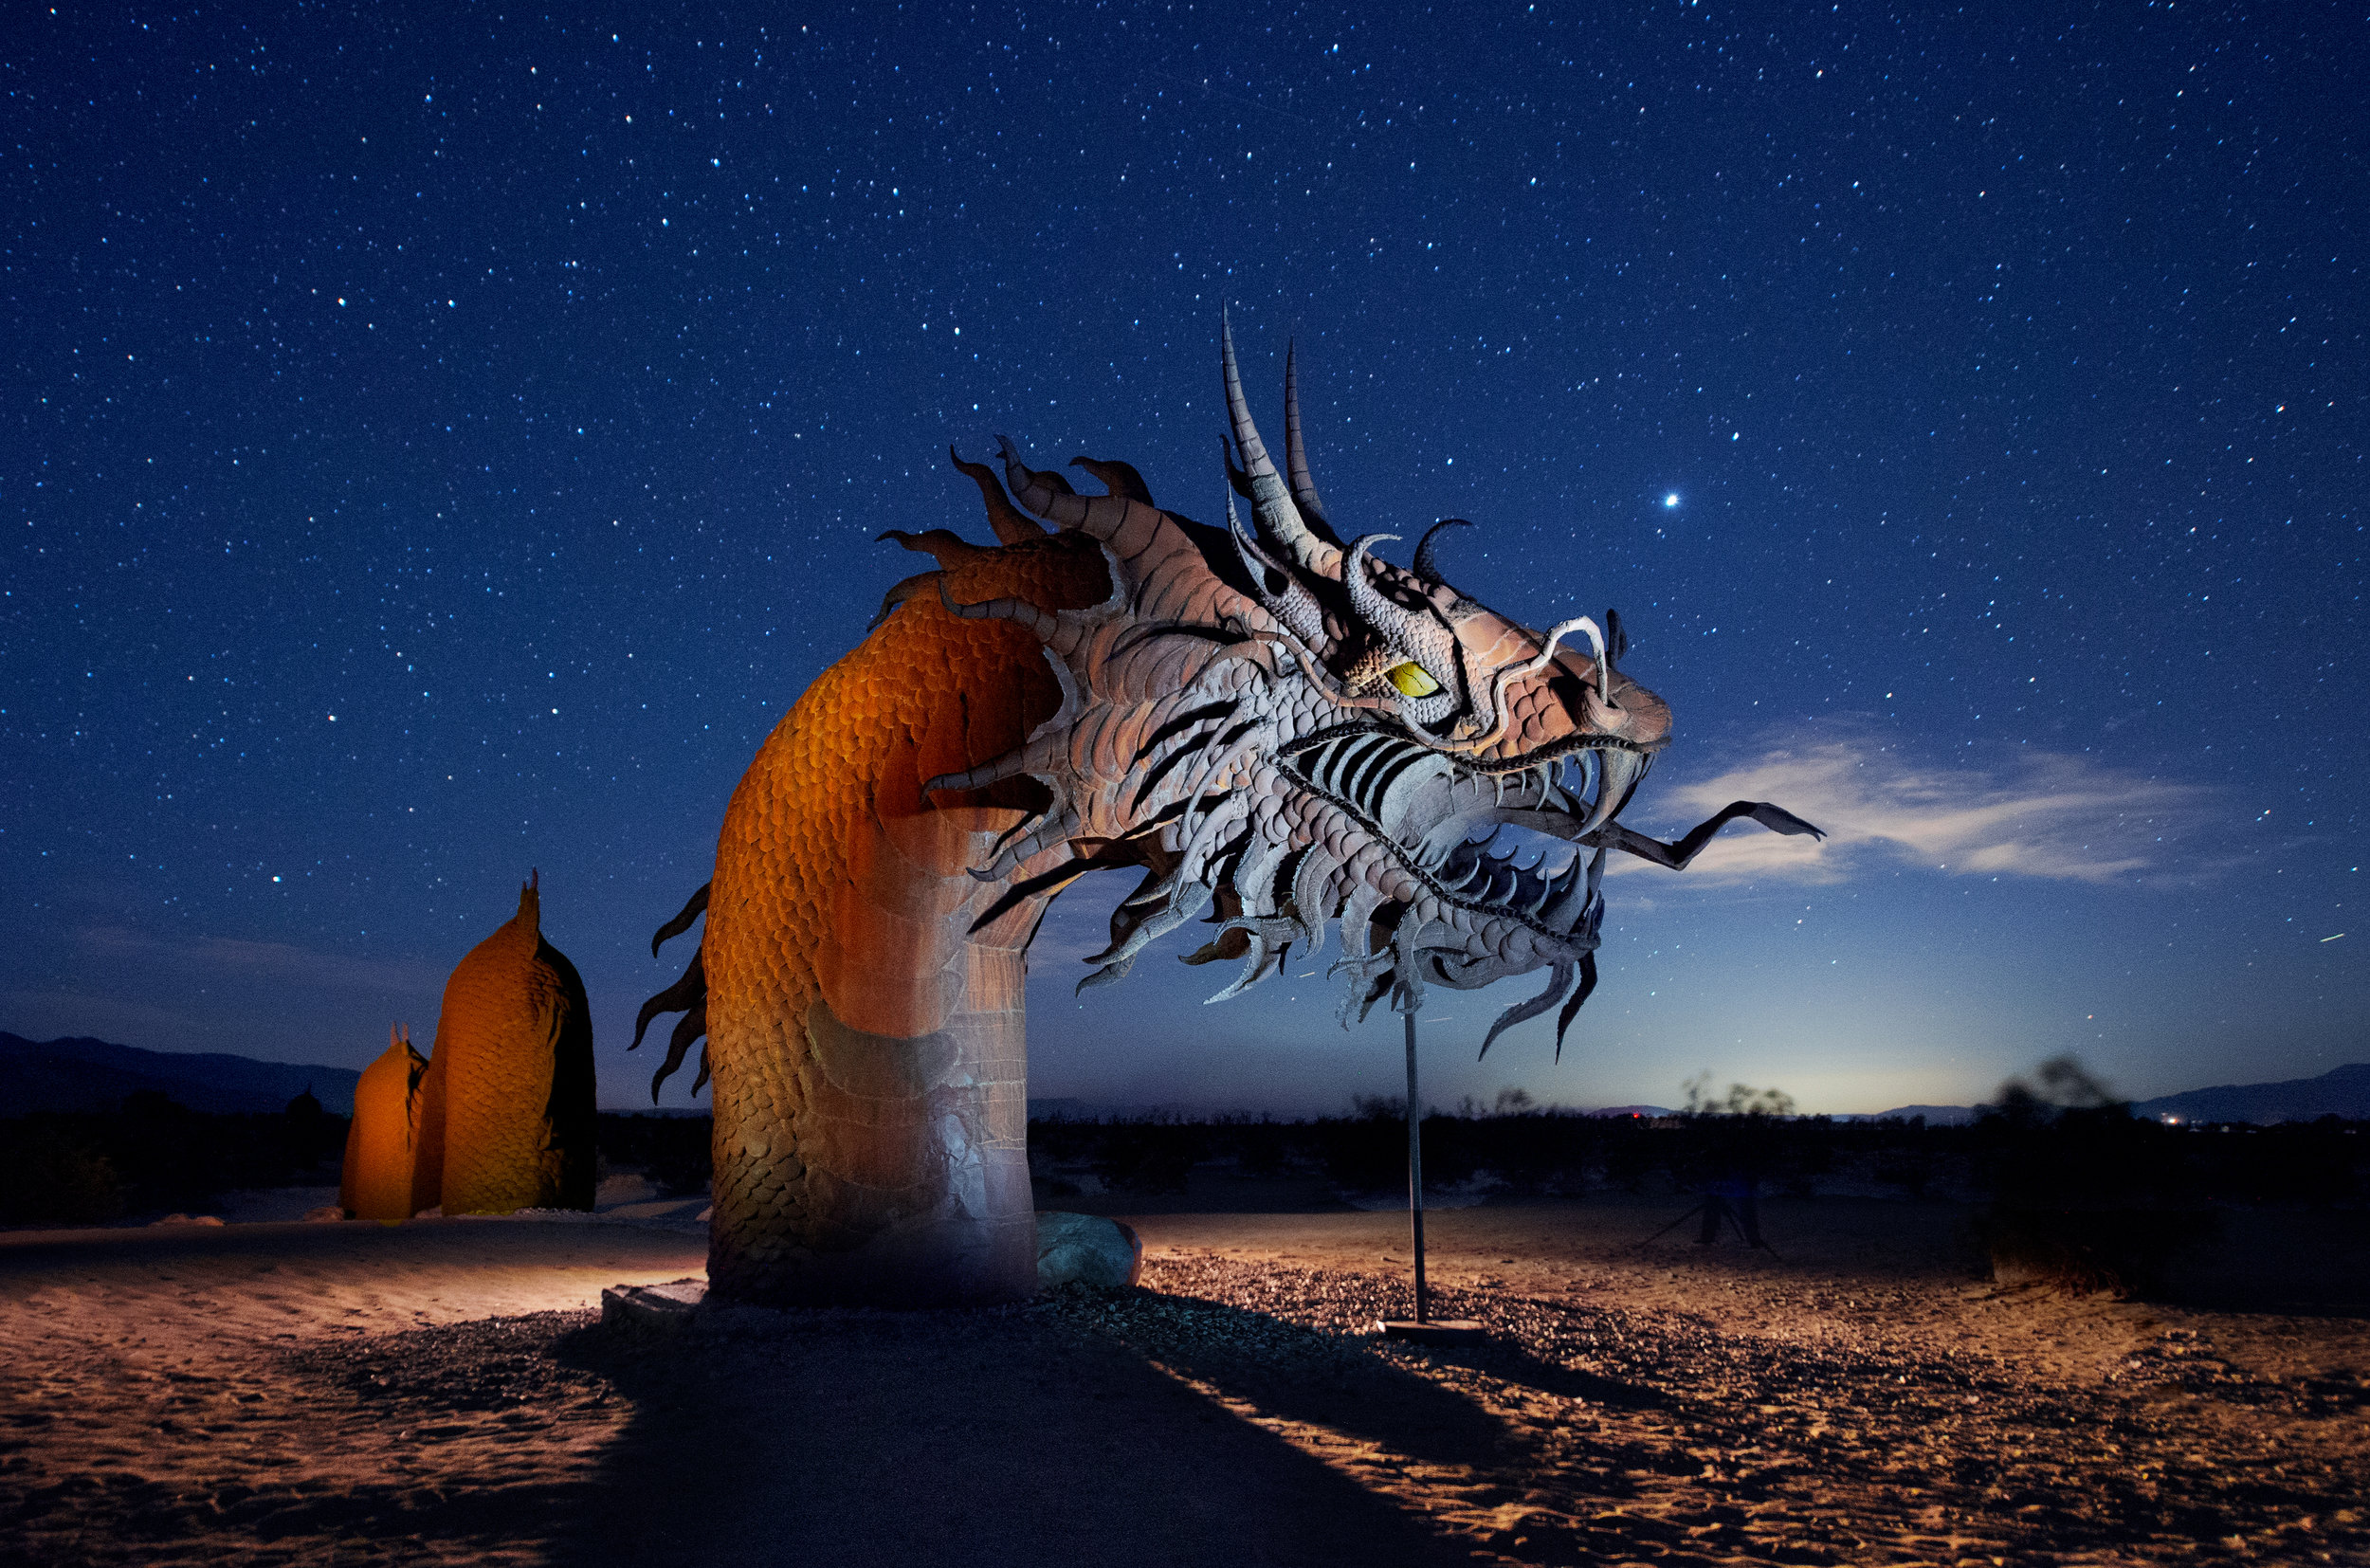 Serpent—Borrego Springs. Nikon D4s, 14-24mm f/2.8 lens set at 24mm. Three exposures at 15 seconds, f/4, ISO 6400.